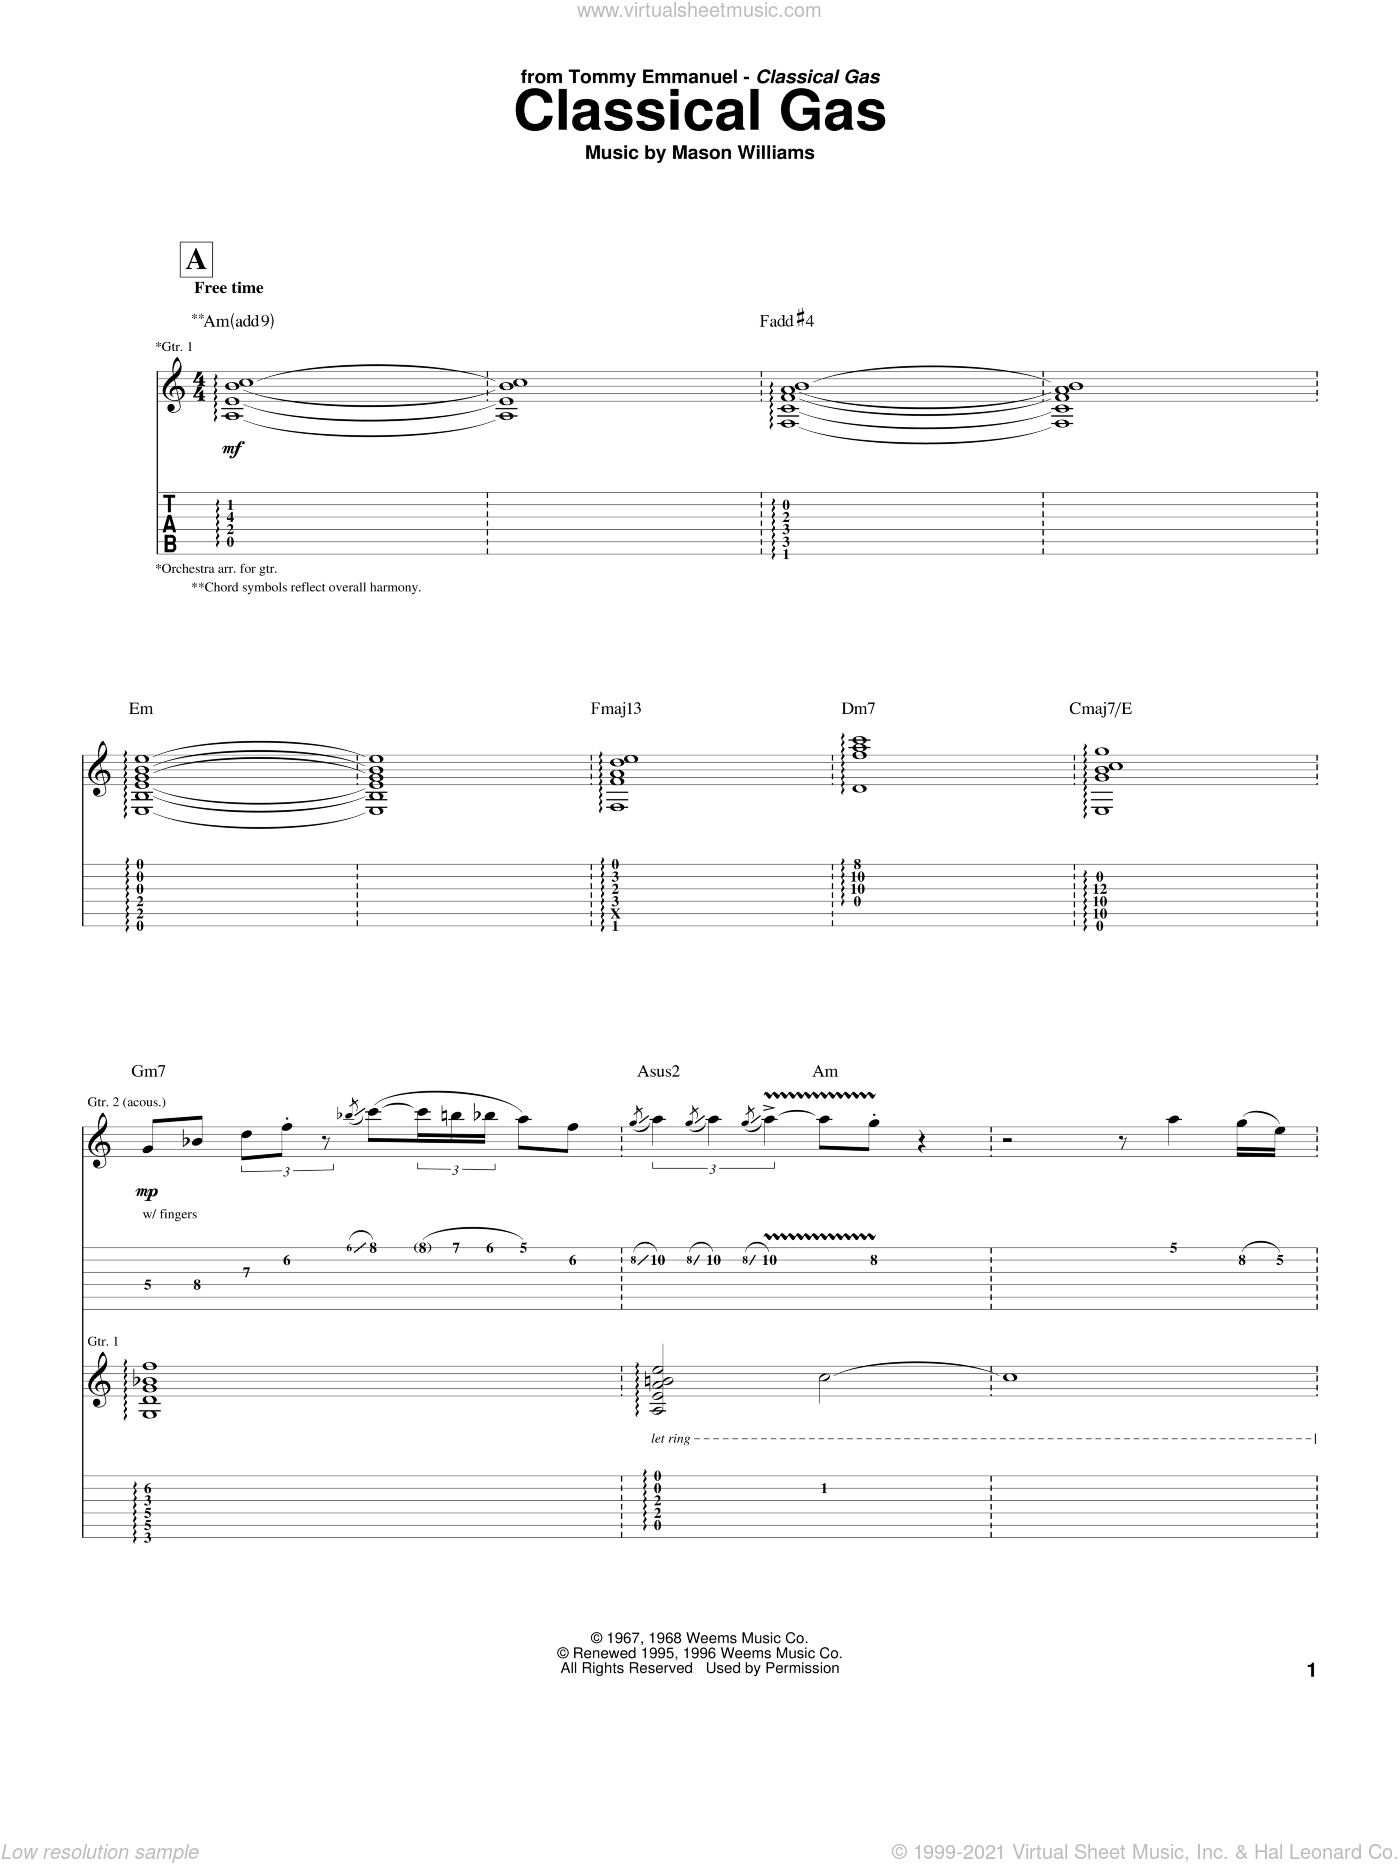 Classical Gas sheet music for guitar (tablature) by Tommy Emmanuel and Mason Williams, classical score, intermediate skill level